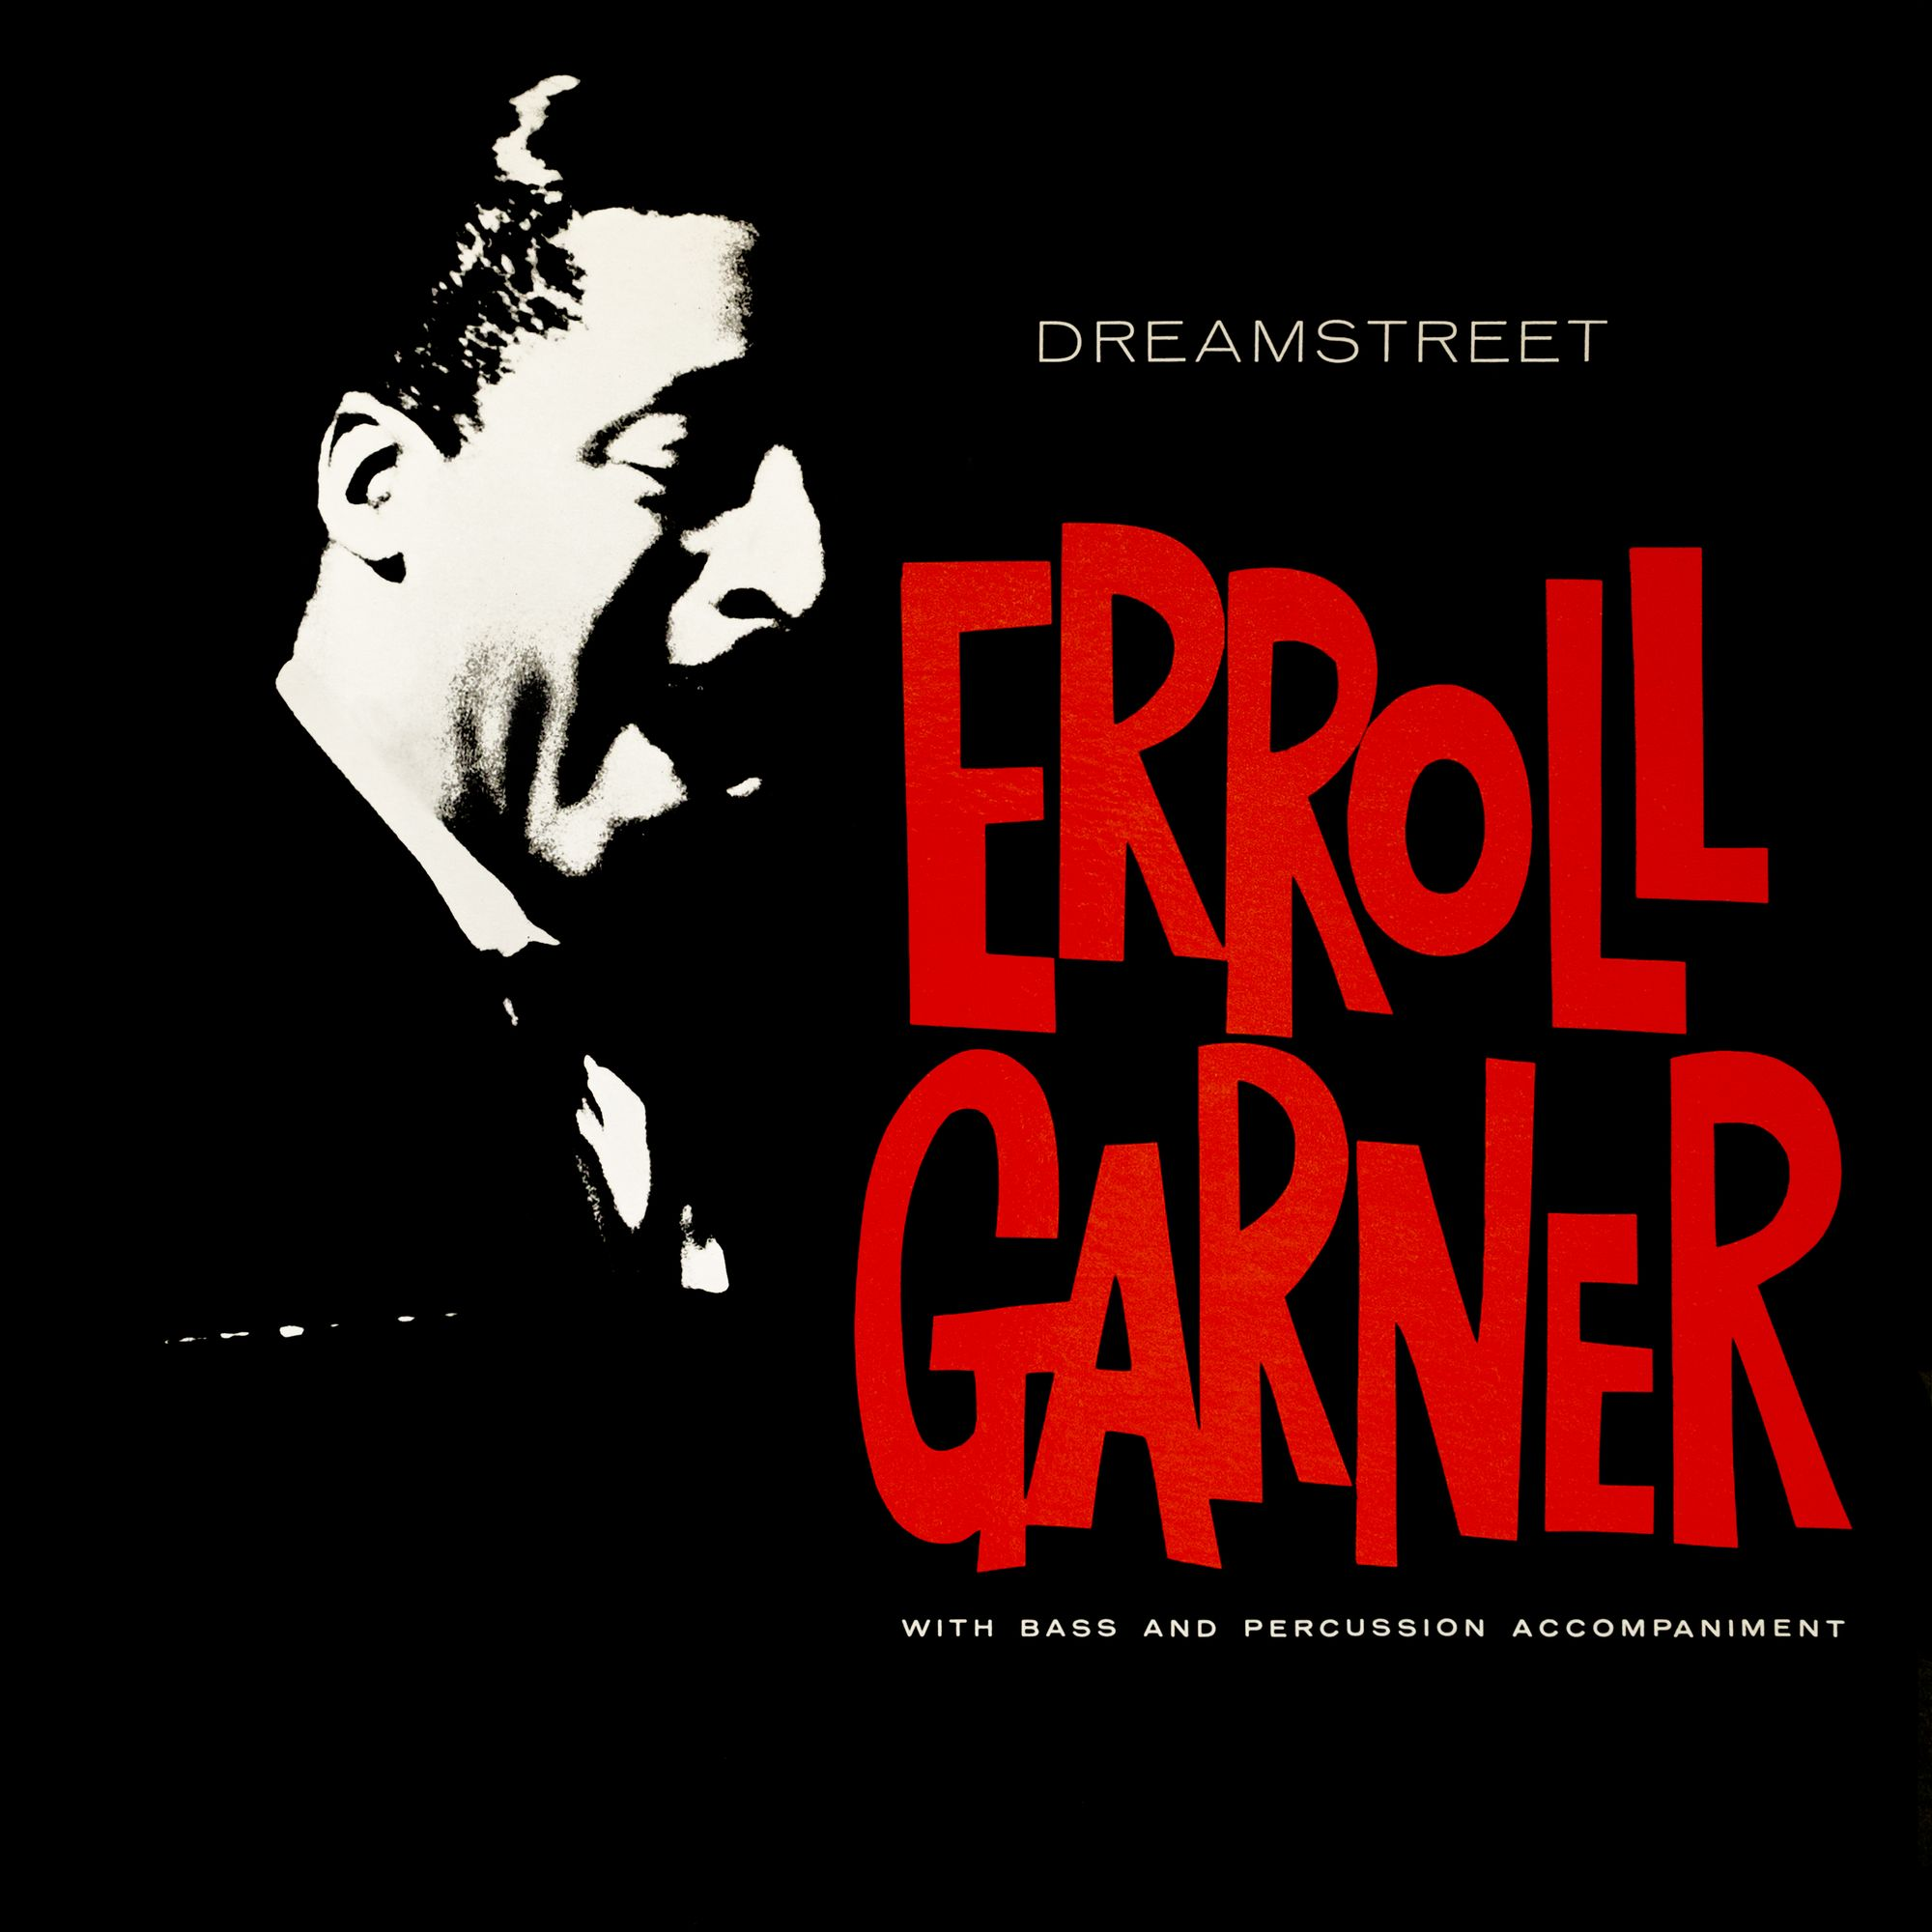 Erroll Garner - Dreamstreet (Remastered)